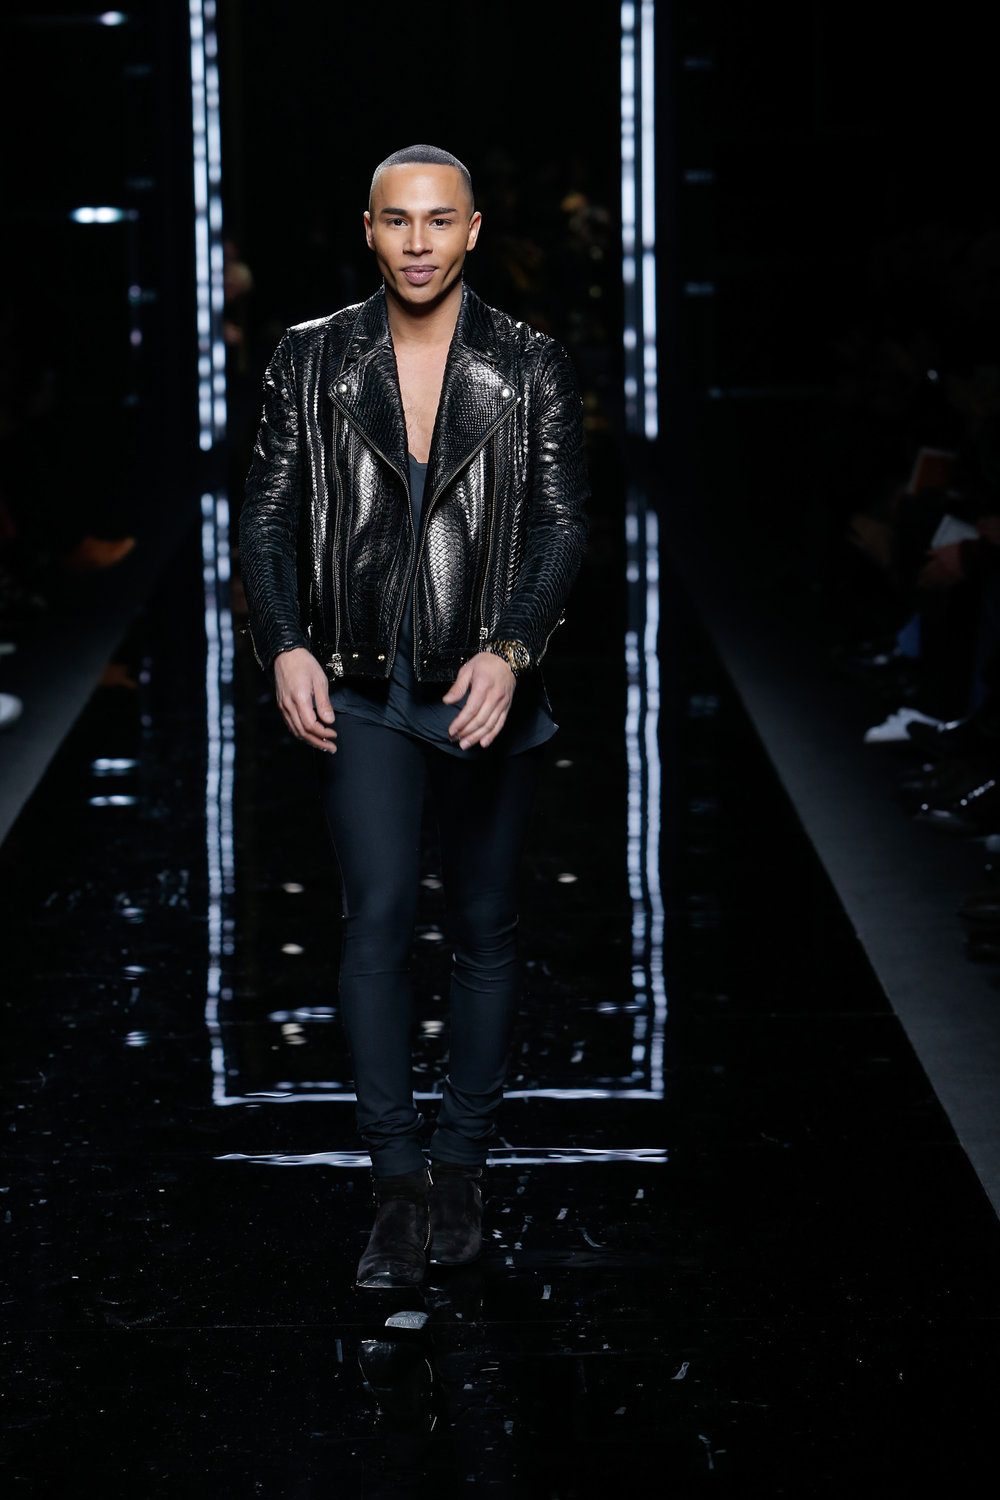 BALMAIN-MENSWEAR-FALL-WINTER-2017-2018